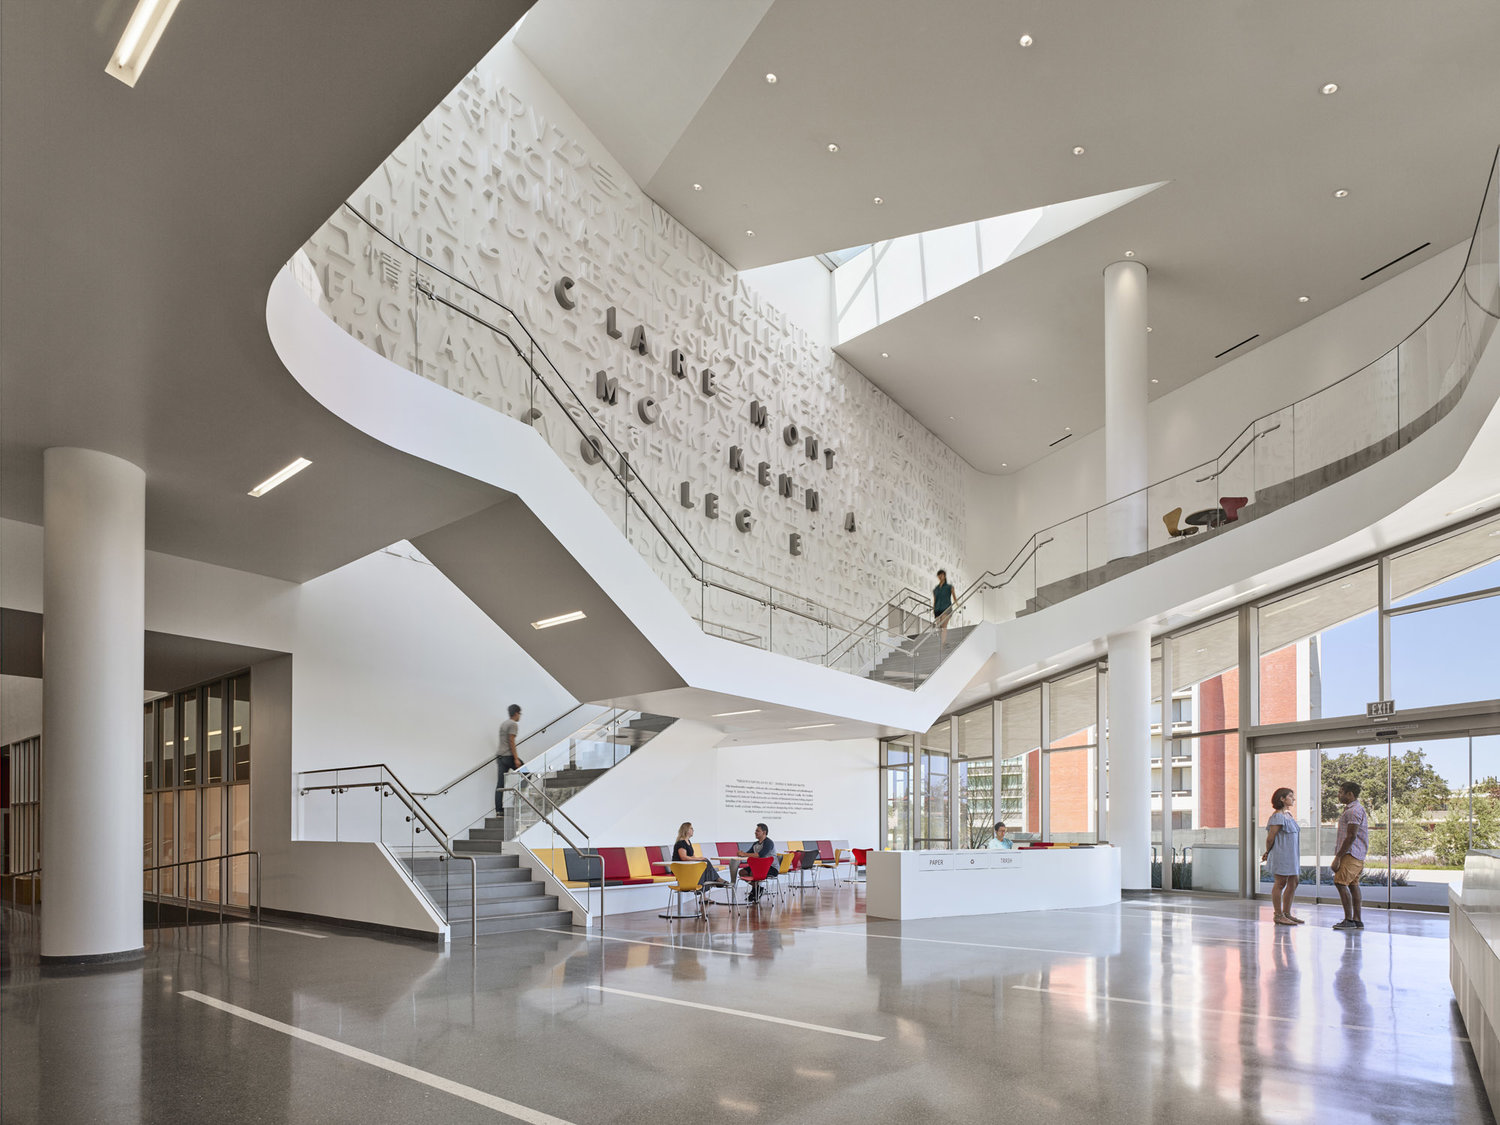 Interior Design 12 Cool College Campus Design Projects Jfak Architects